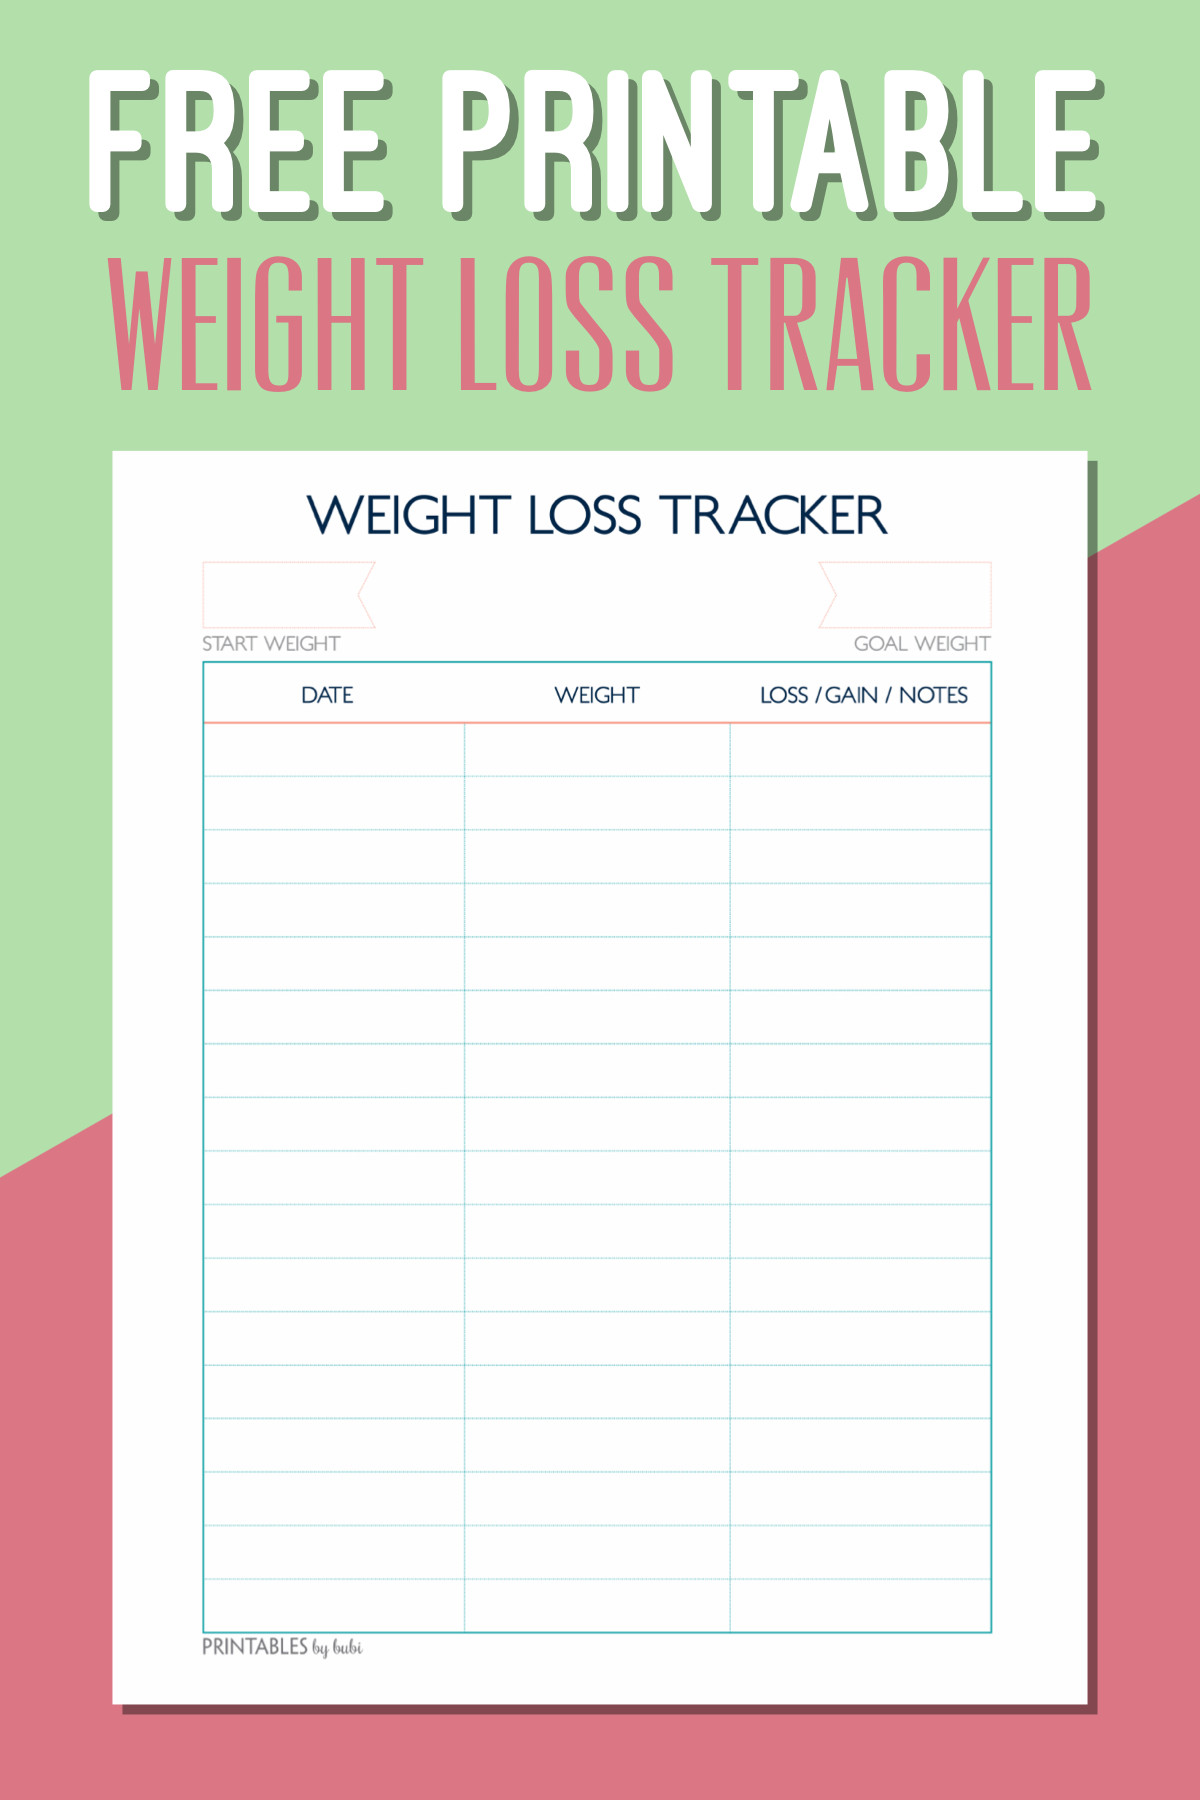 Printable Weight Loss Chart Free Printable Weight Loss Tracker – Instant Download Pdf